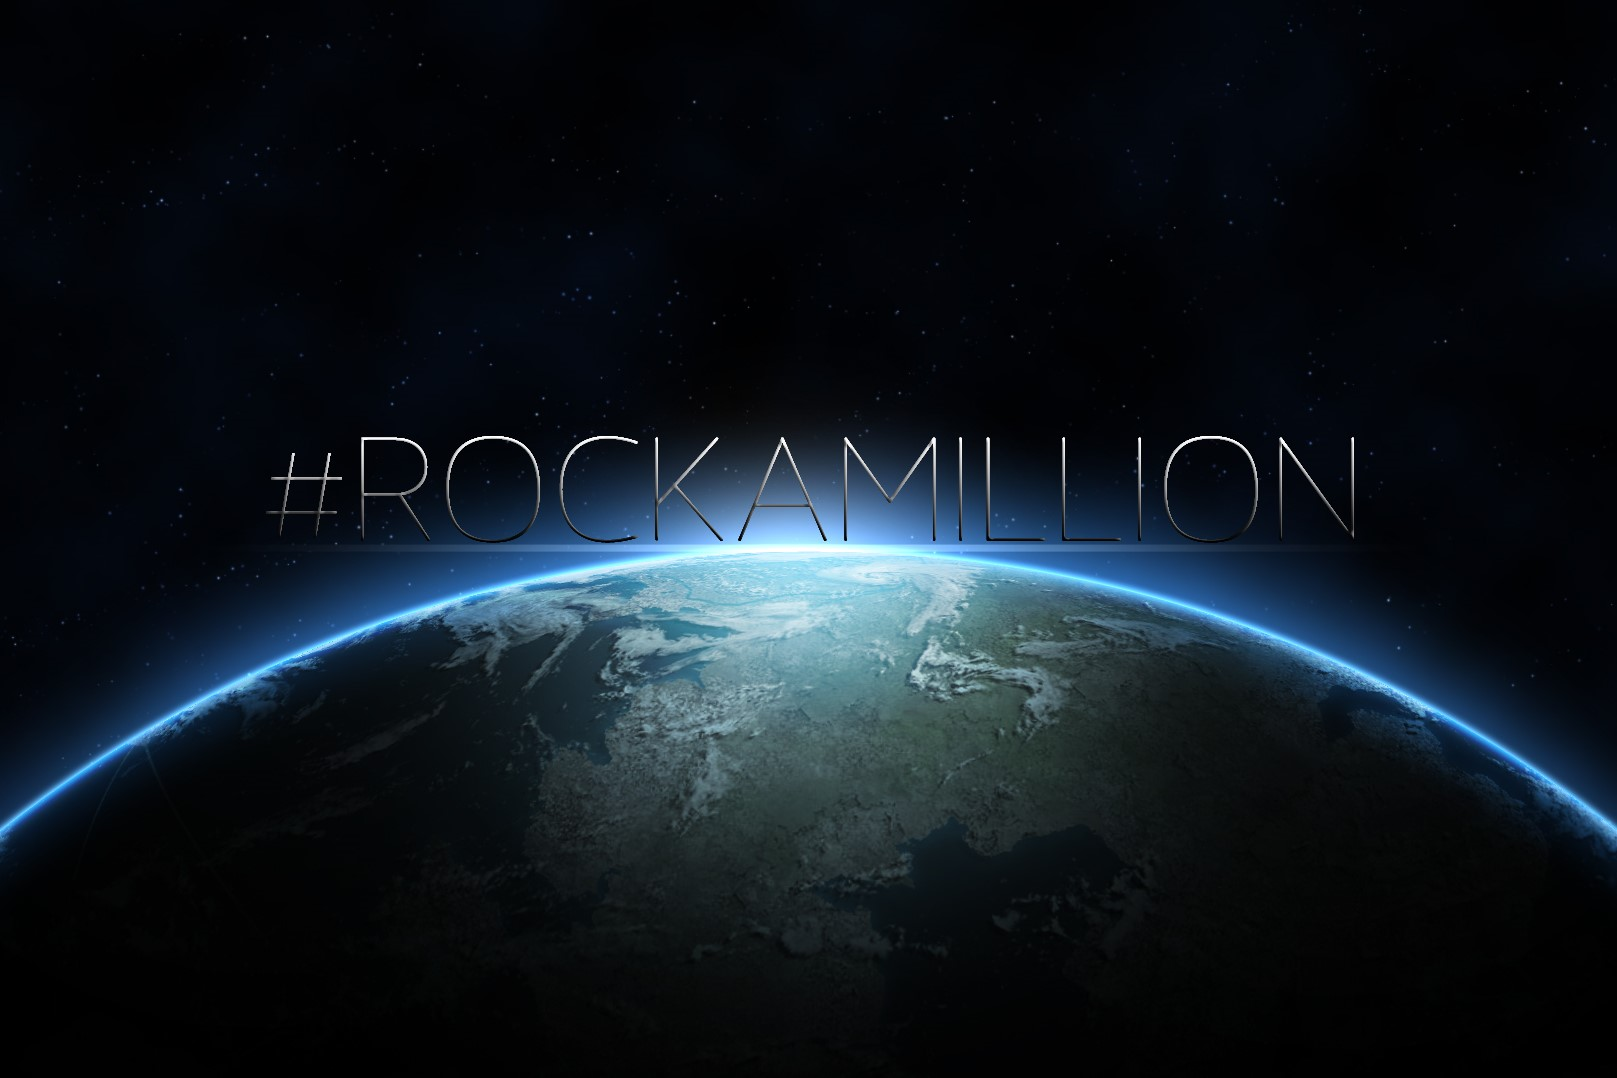 #RockaMillion - Every October, The Rocks embark on a global campaign to reach the world. Don't miss out on the phenomenon that has changed millions of lives!